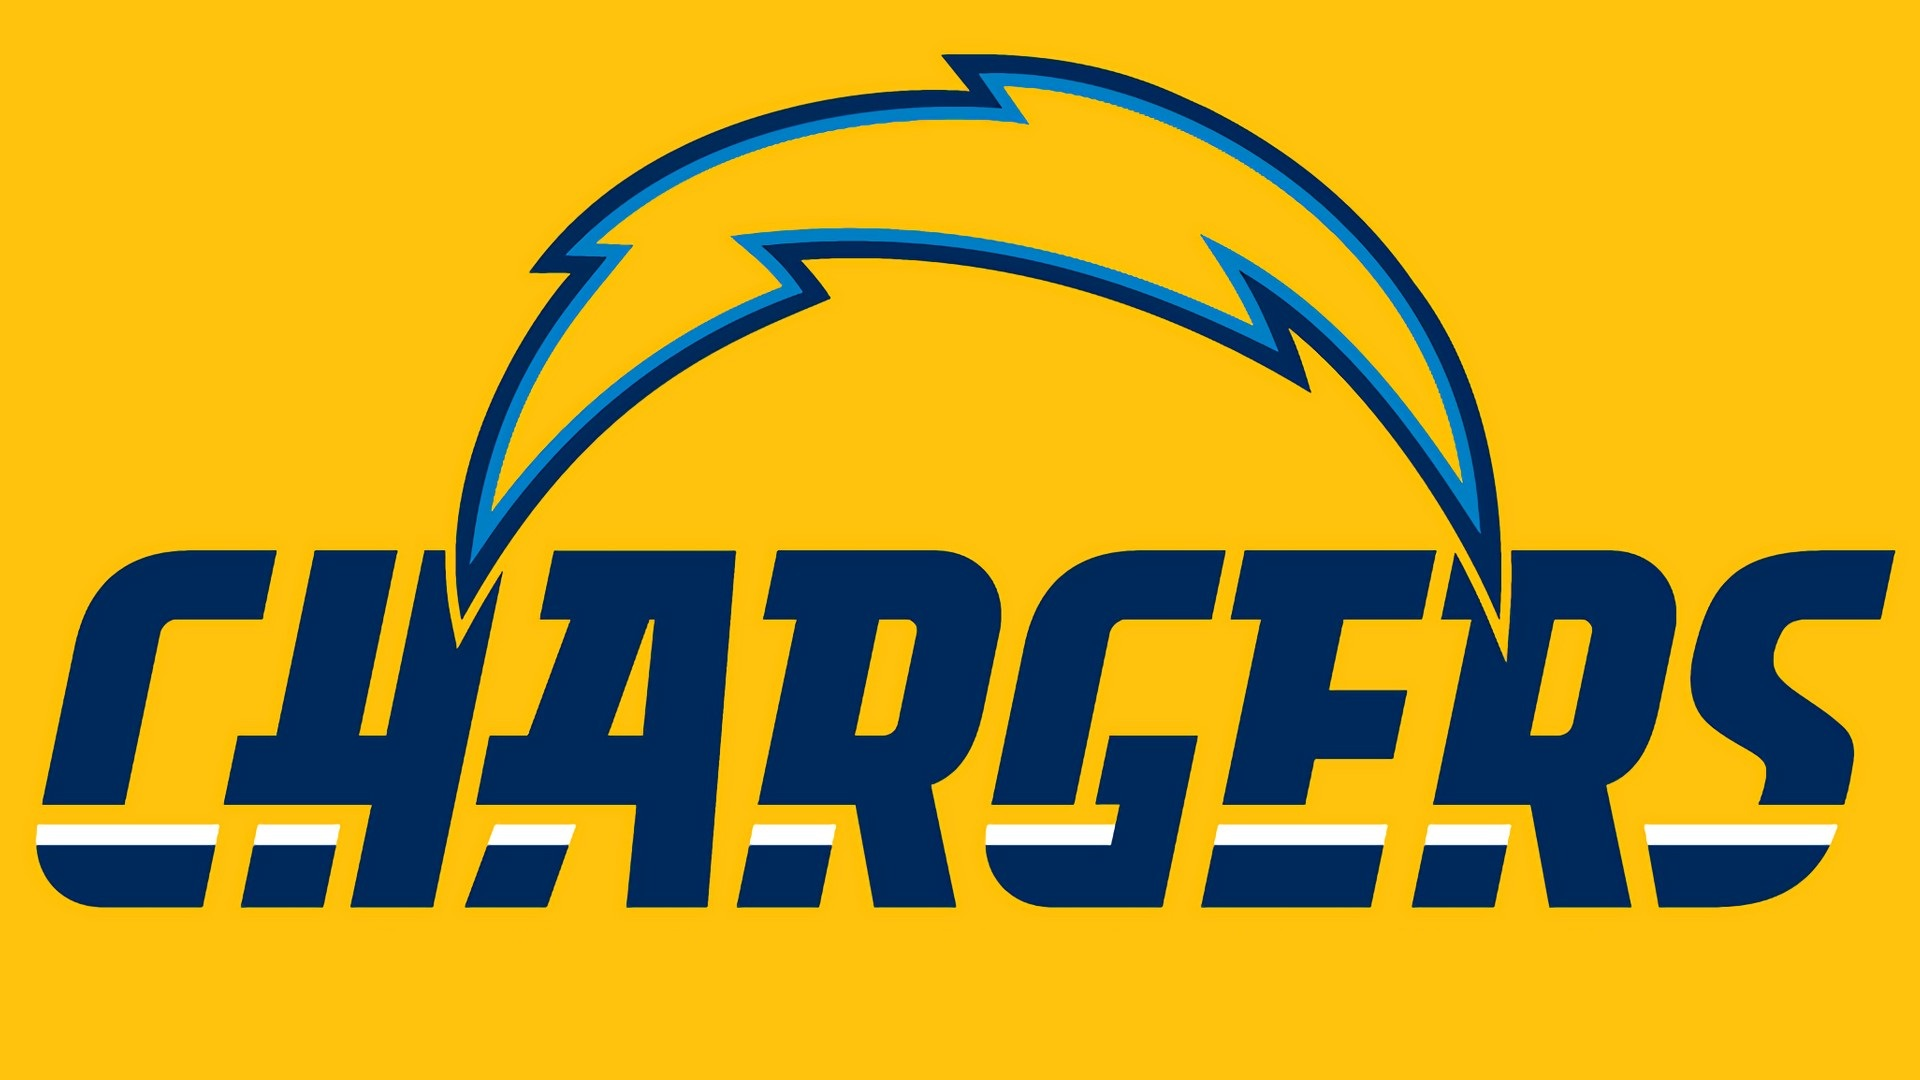 Los Angeles Chargers Wallpapers Posted By Samantha Johnson